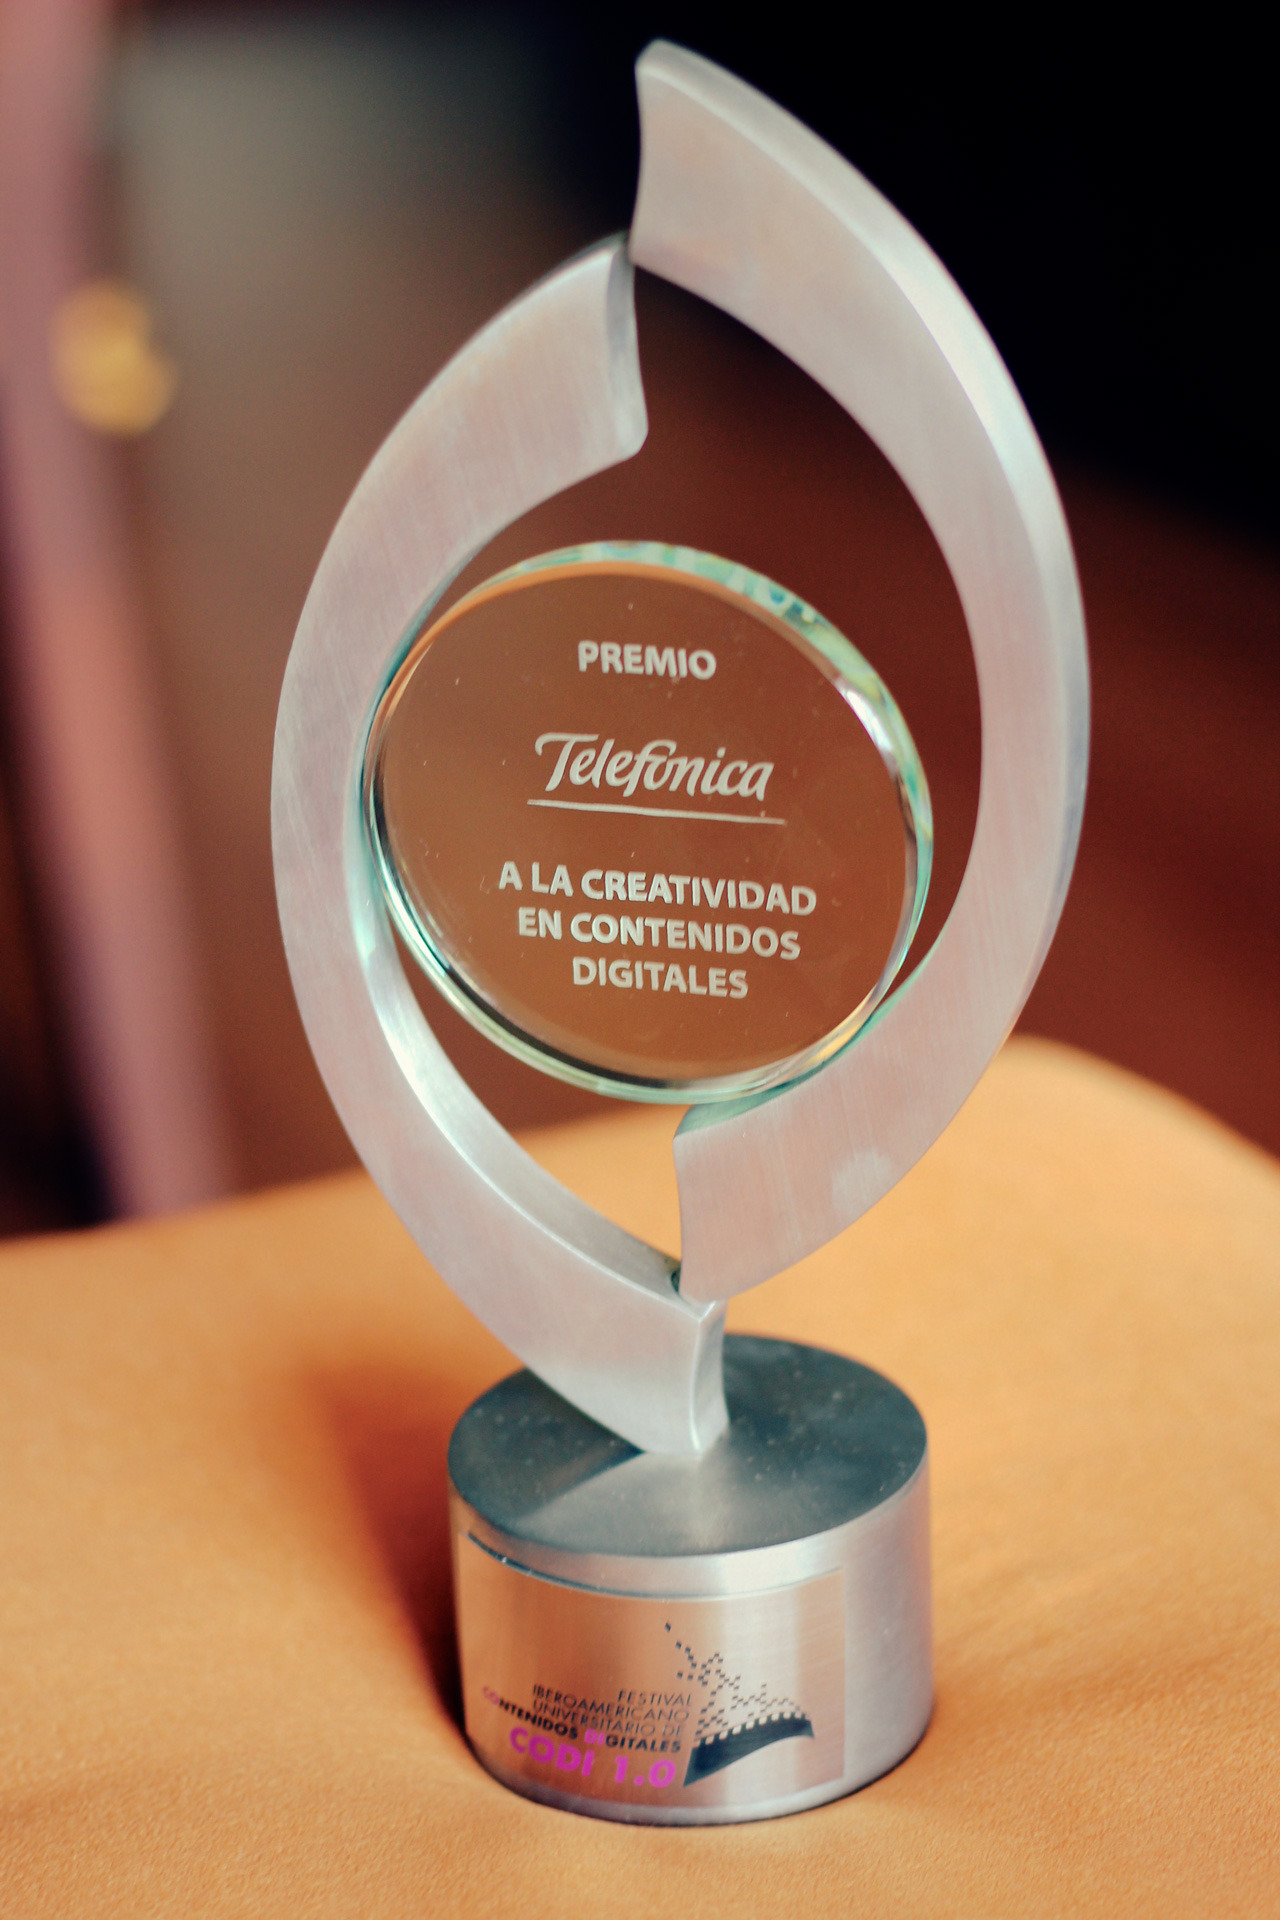 Telefónica award for Creativity in Digital Content for Our World Short Film in the I Iberoamerican Universities Festival in Digital Content (CODI) celebrated at the XIV Felafacs meeting 2012. Premio Telefónica a la Creatividad en Contenidos Digitales por Our World Short Film en el I Festival Iberoamericano Universitario de Contenidos Digitales (CODI) celebrado en el XIV Encuentro de Felafacs 2012.